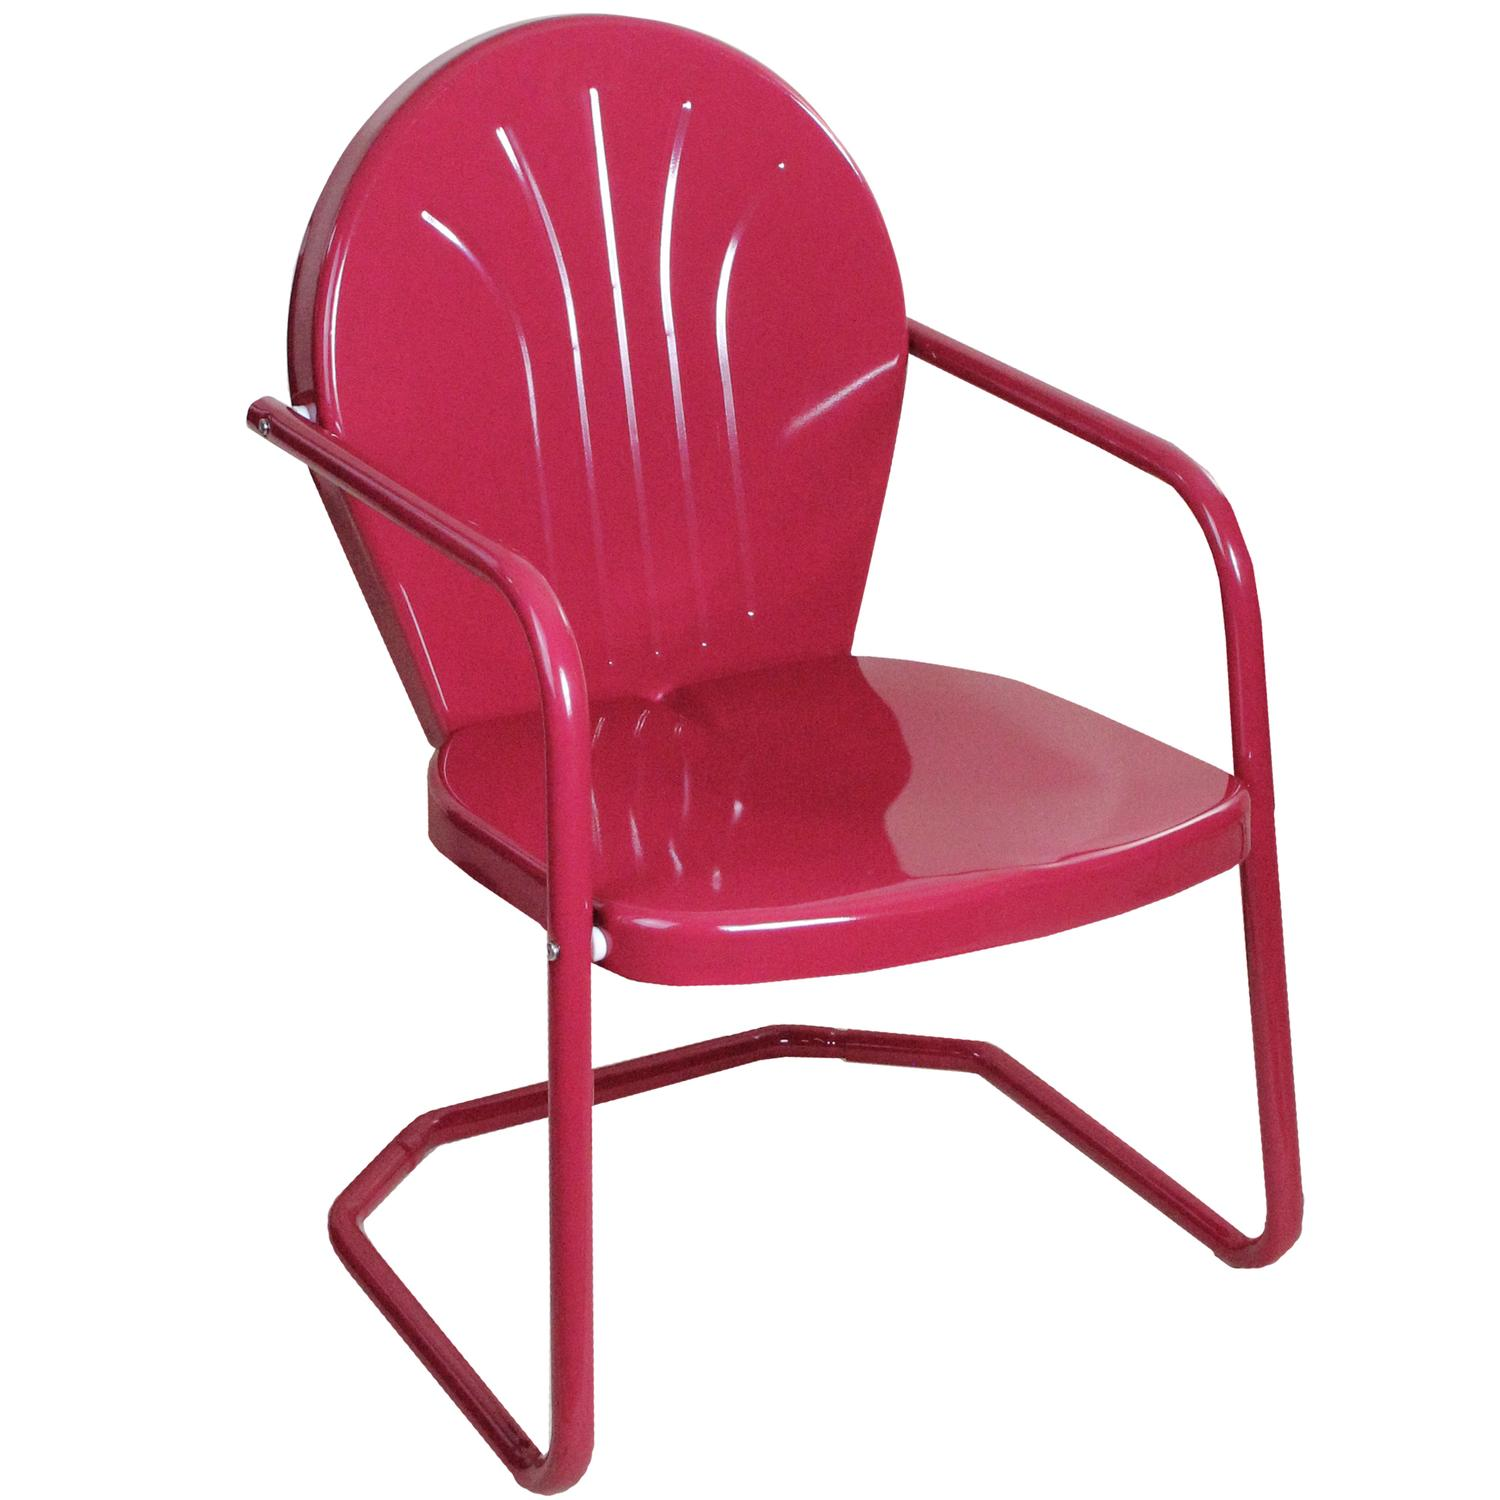 Genial Retro Style 34 Inch Outdoor Metal Tulip Chair, Raspberry Pink